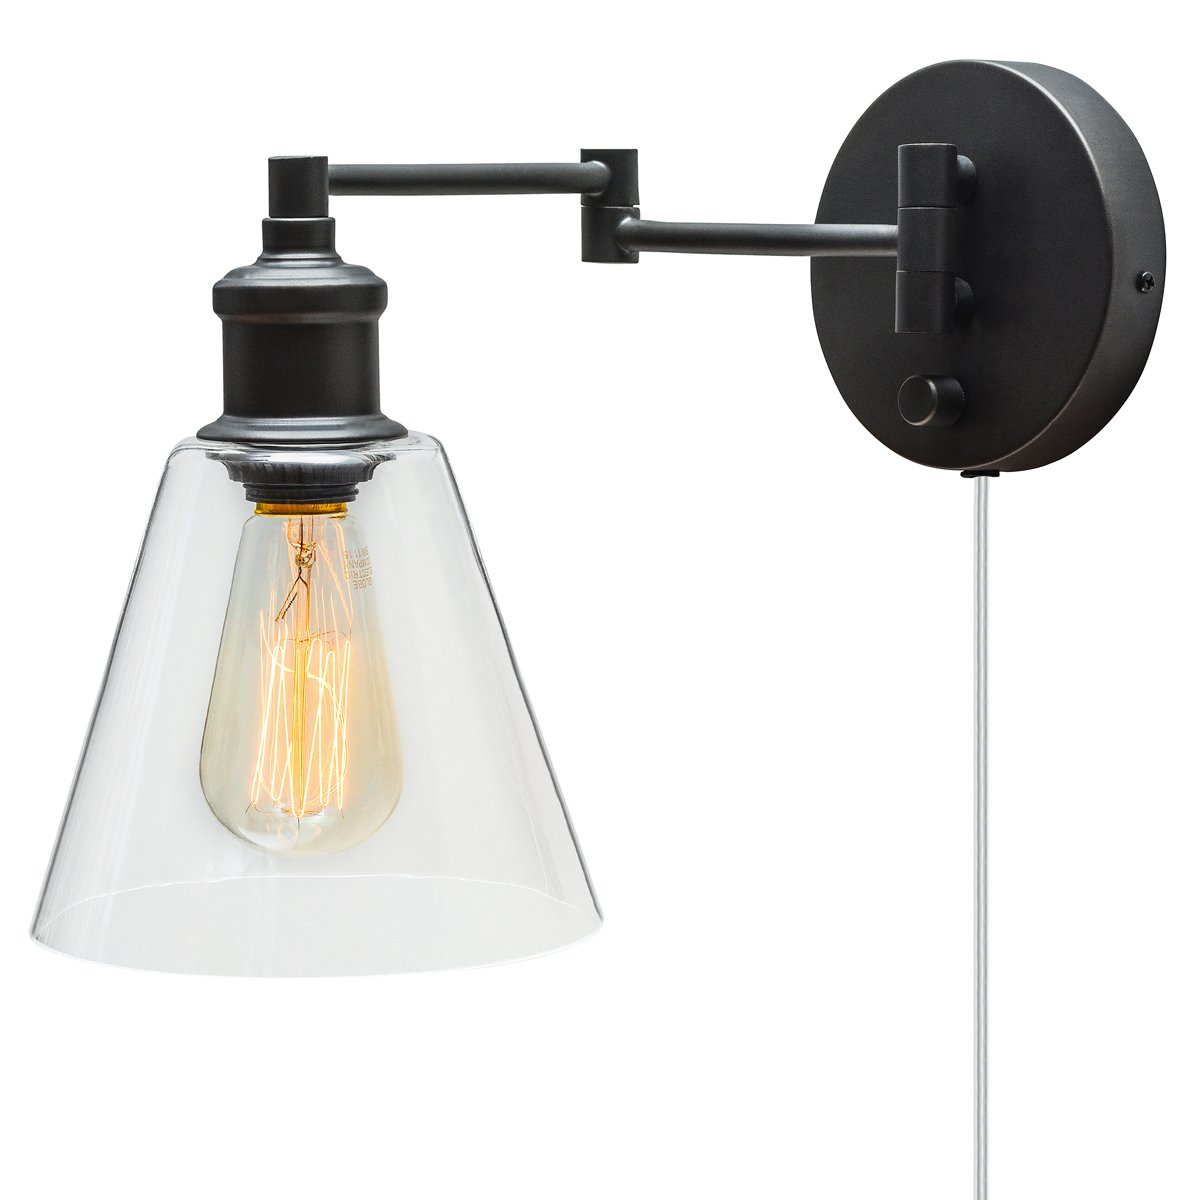 Globe Electric LeClair 1-Light Plug-In or Hardwire Industrial Wall Sconce, Dark Bronze Finish, On/Off Rotary Switch on Canopy, 6 Foot Clear Cord, 65311 by Globe Electric (Image #1)